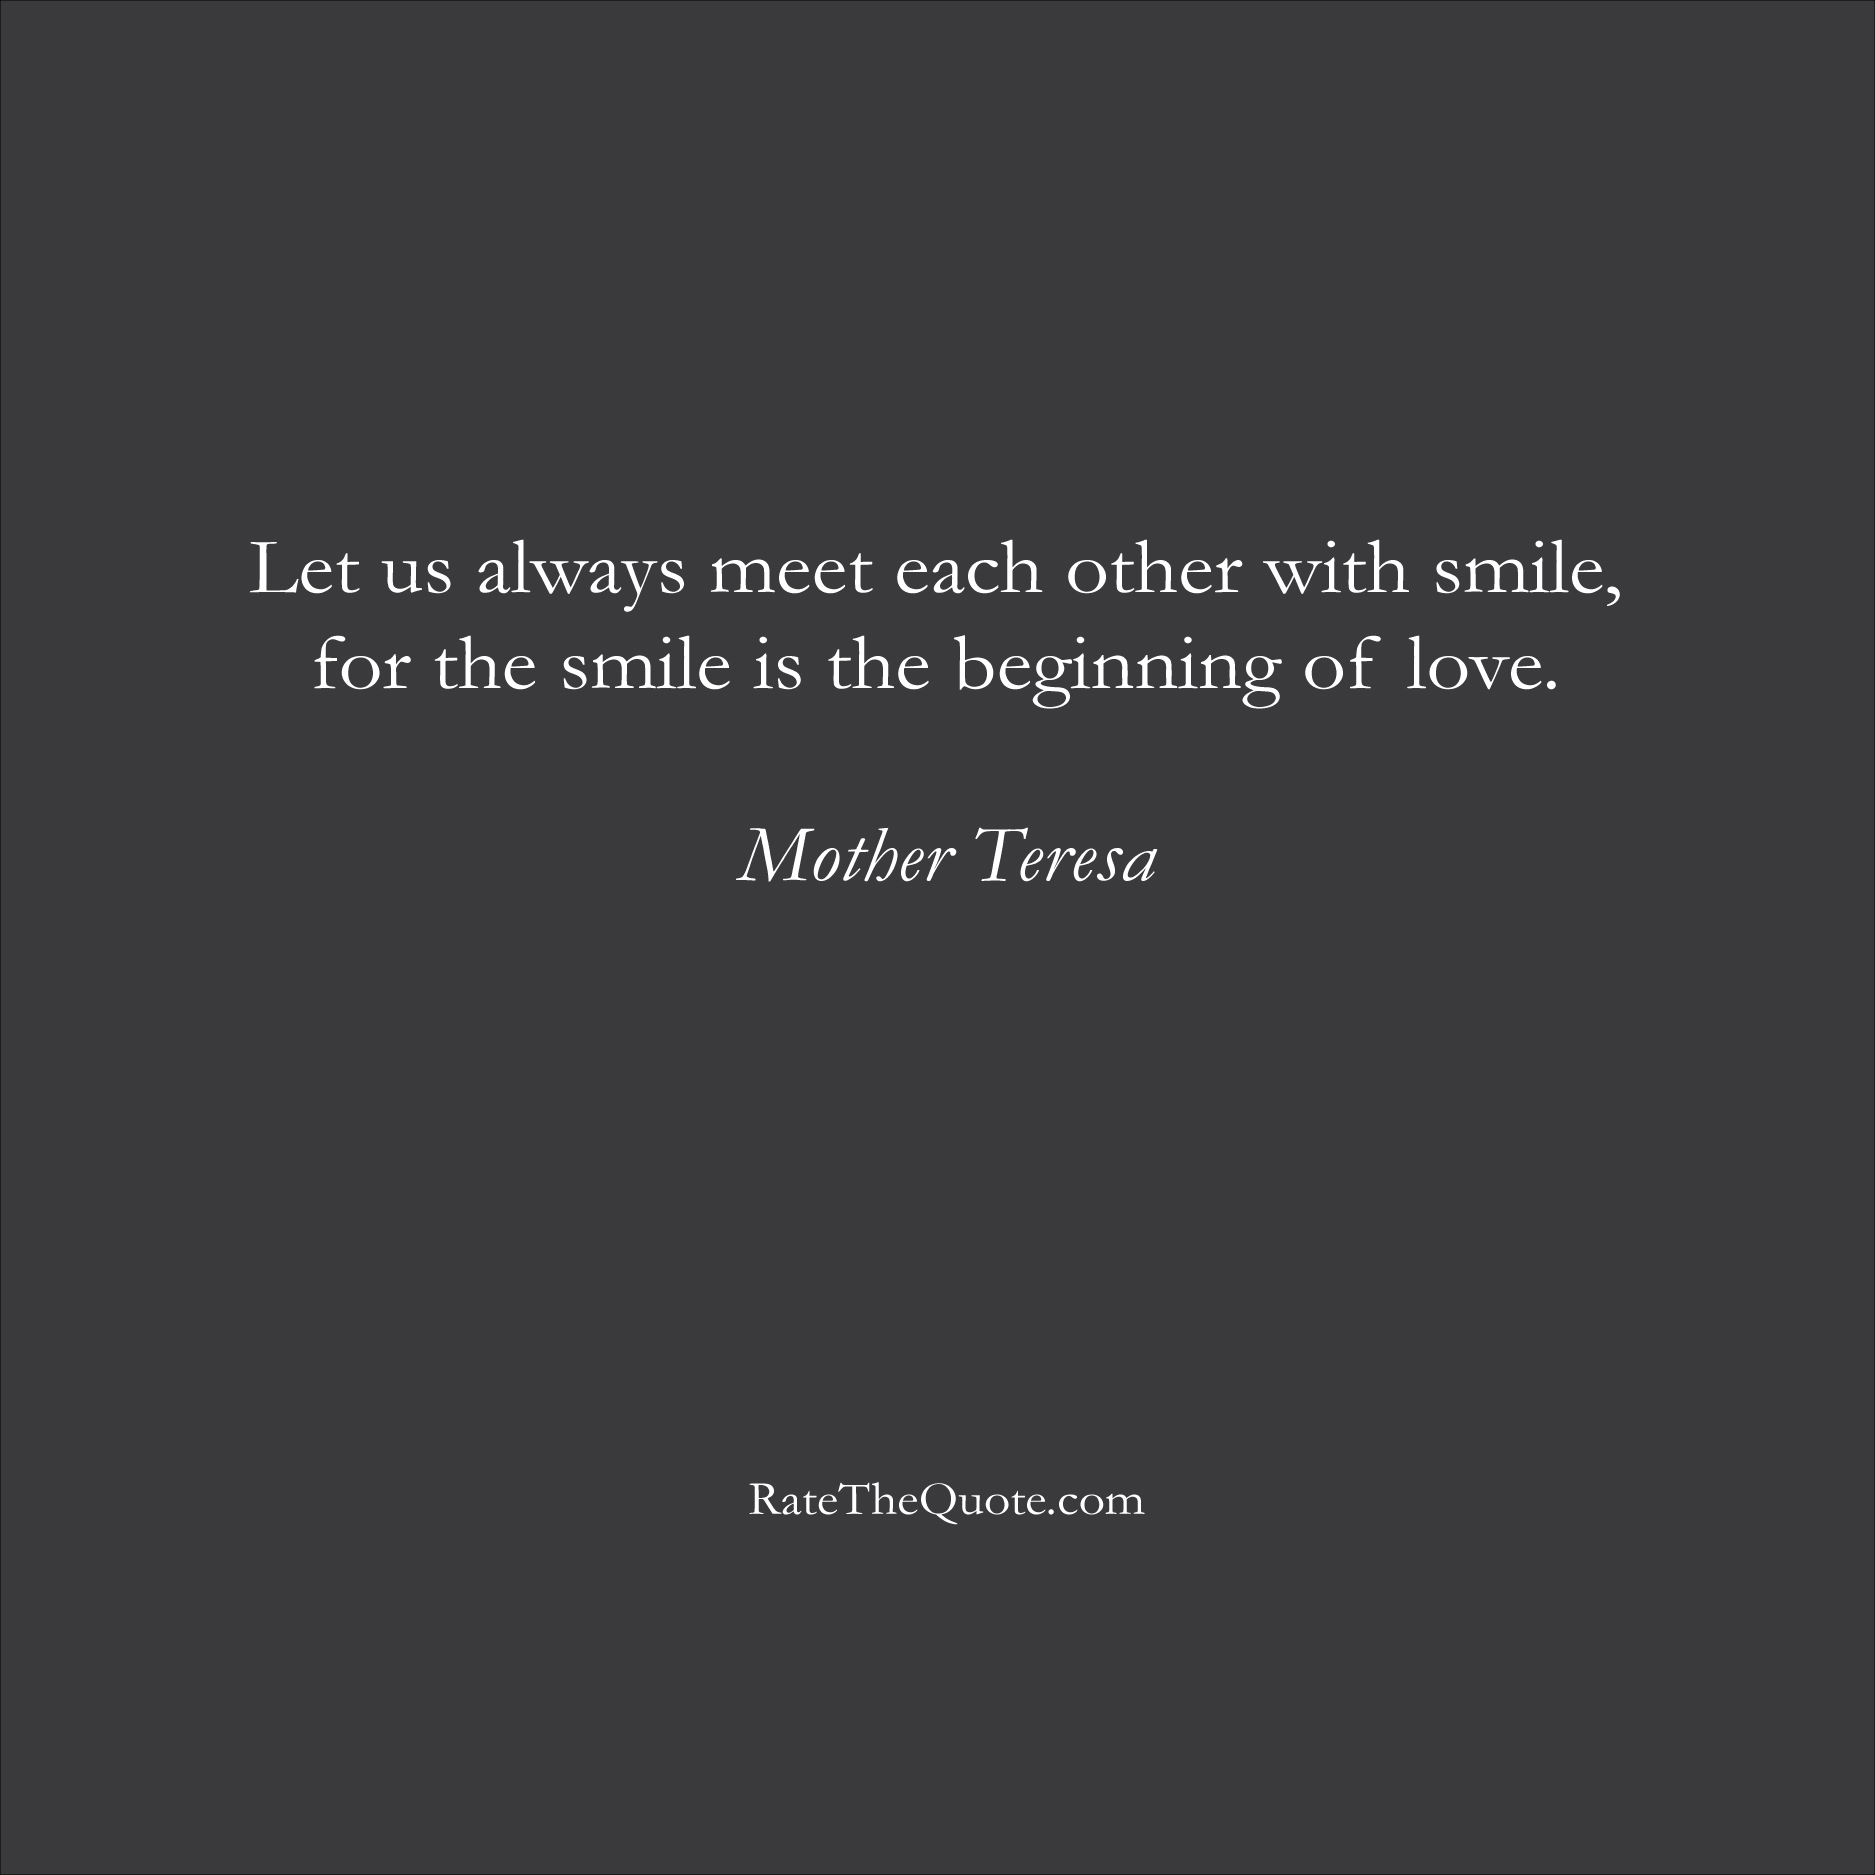 Love Quotes Let us always meet each other with smile, for the smile is the beginning of love. Mother Teresa